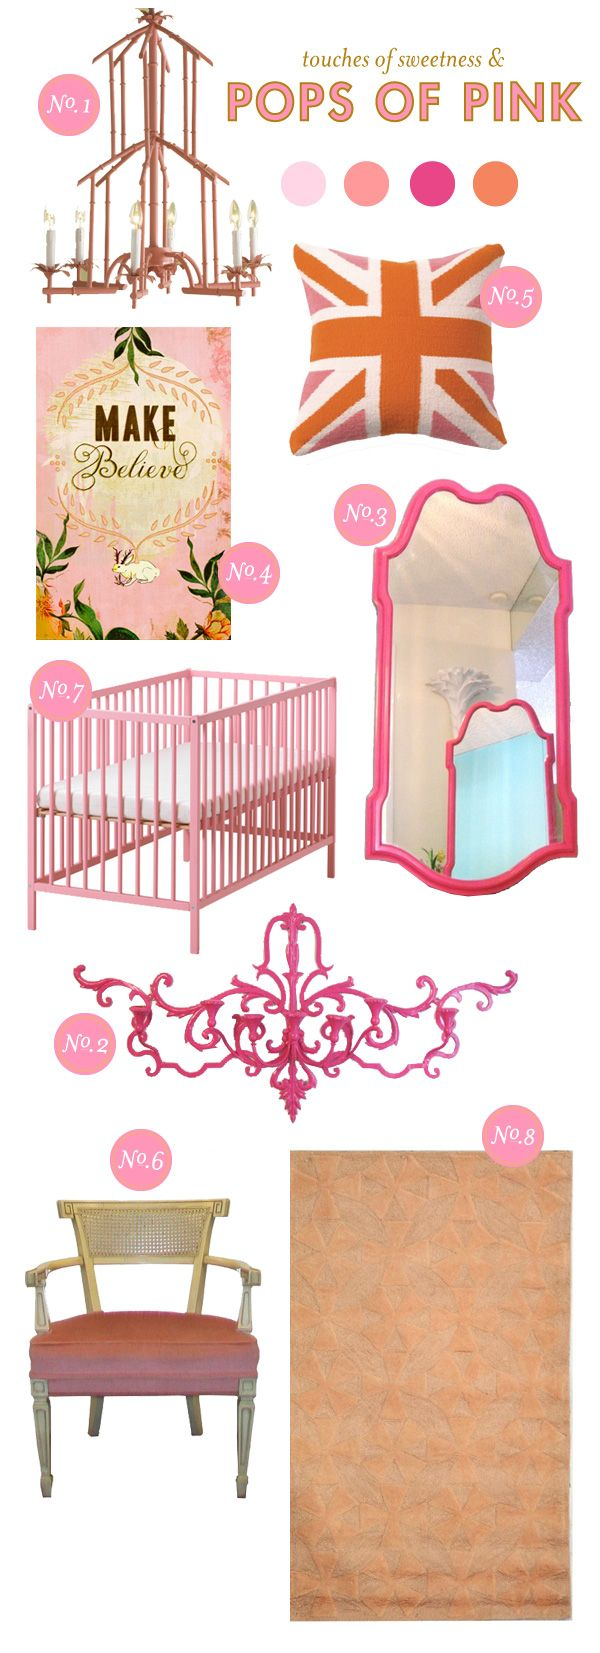 Design boards by Lay Baby Lay, always a delight!: Nurseries Inspiration, Monochromatic Rooms, Pink And Orange Nurseries, Girls Bedrooms, Baby Ideas, Baby Rooms, Laying Baby Laying, Girls Nurseries, Baby Nurseries